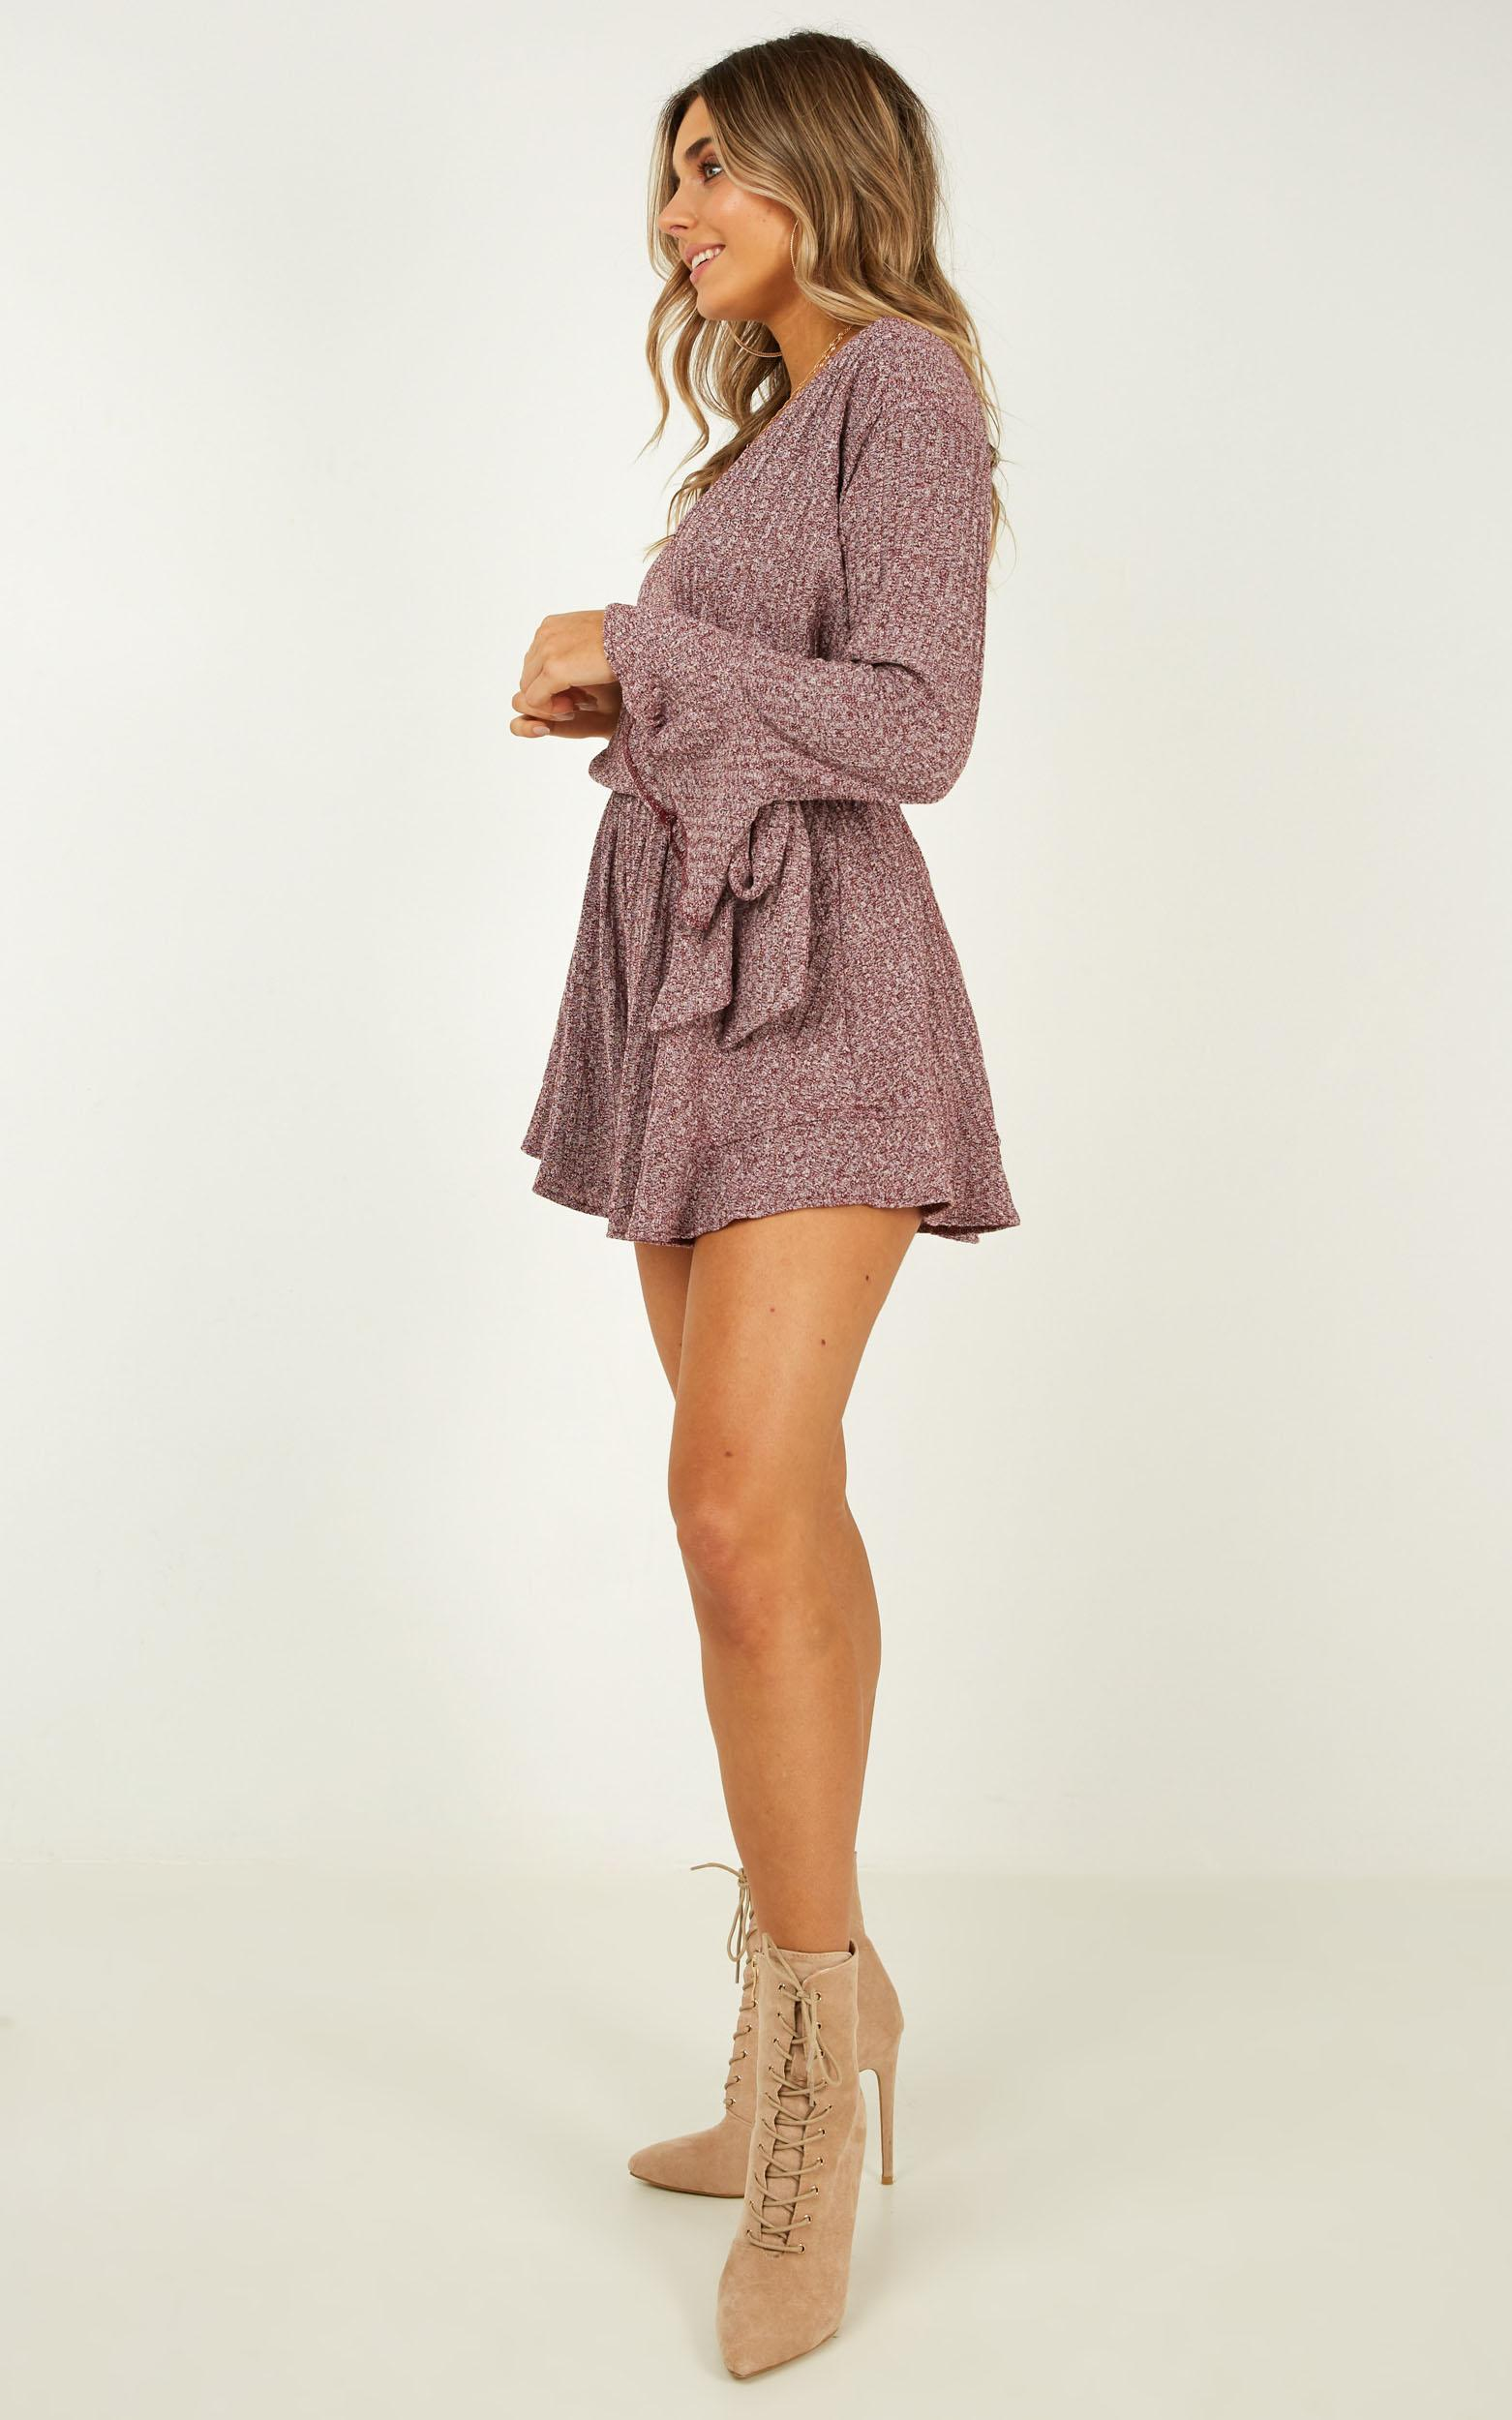 New and Fresh Playsuit in wine marle - 14 (XL), Wine, hi-res image number null